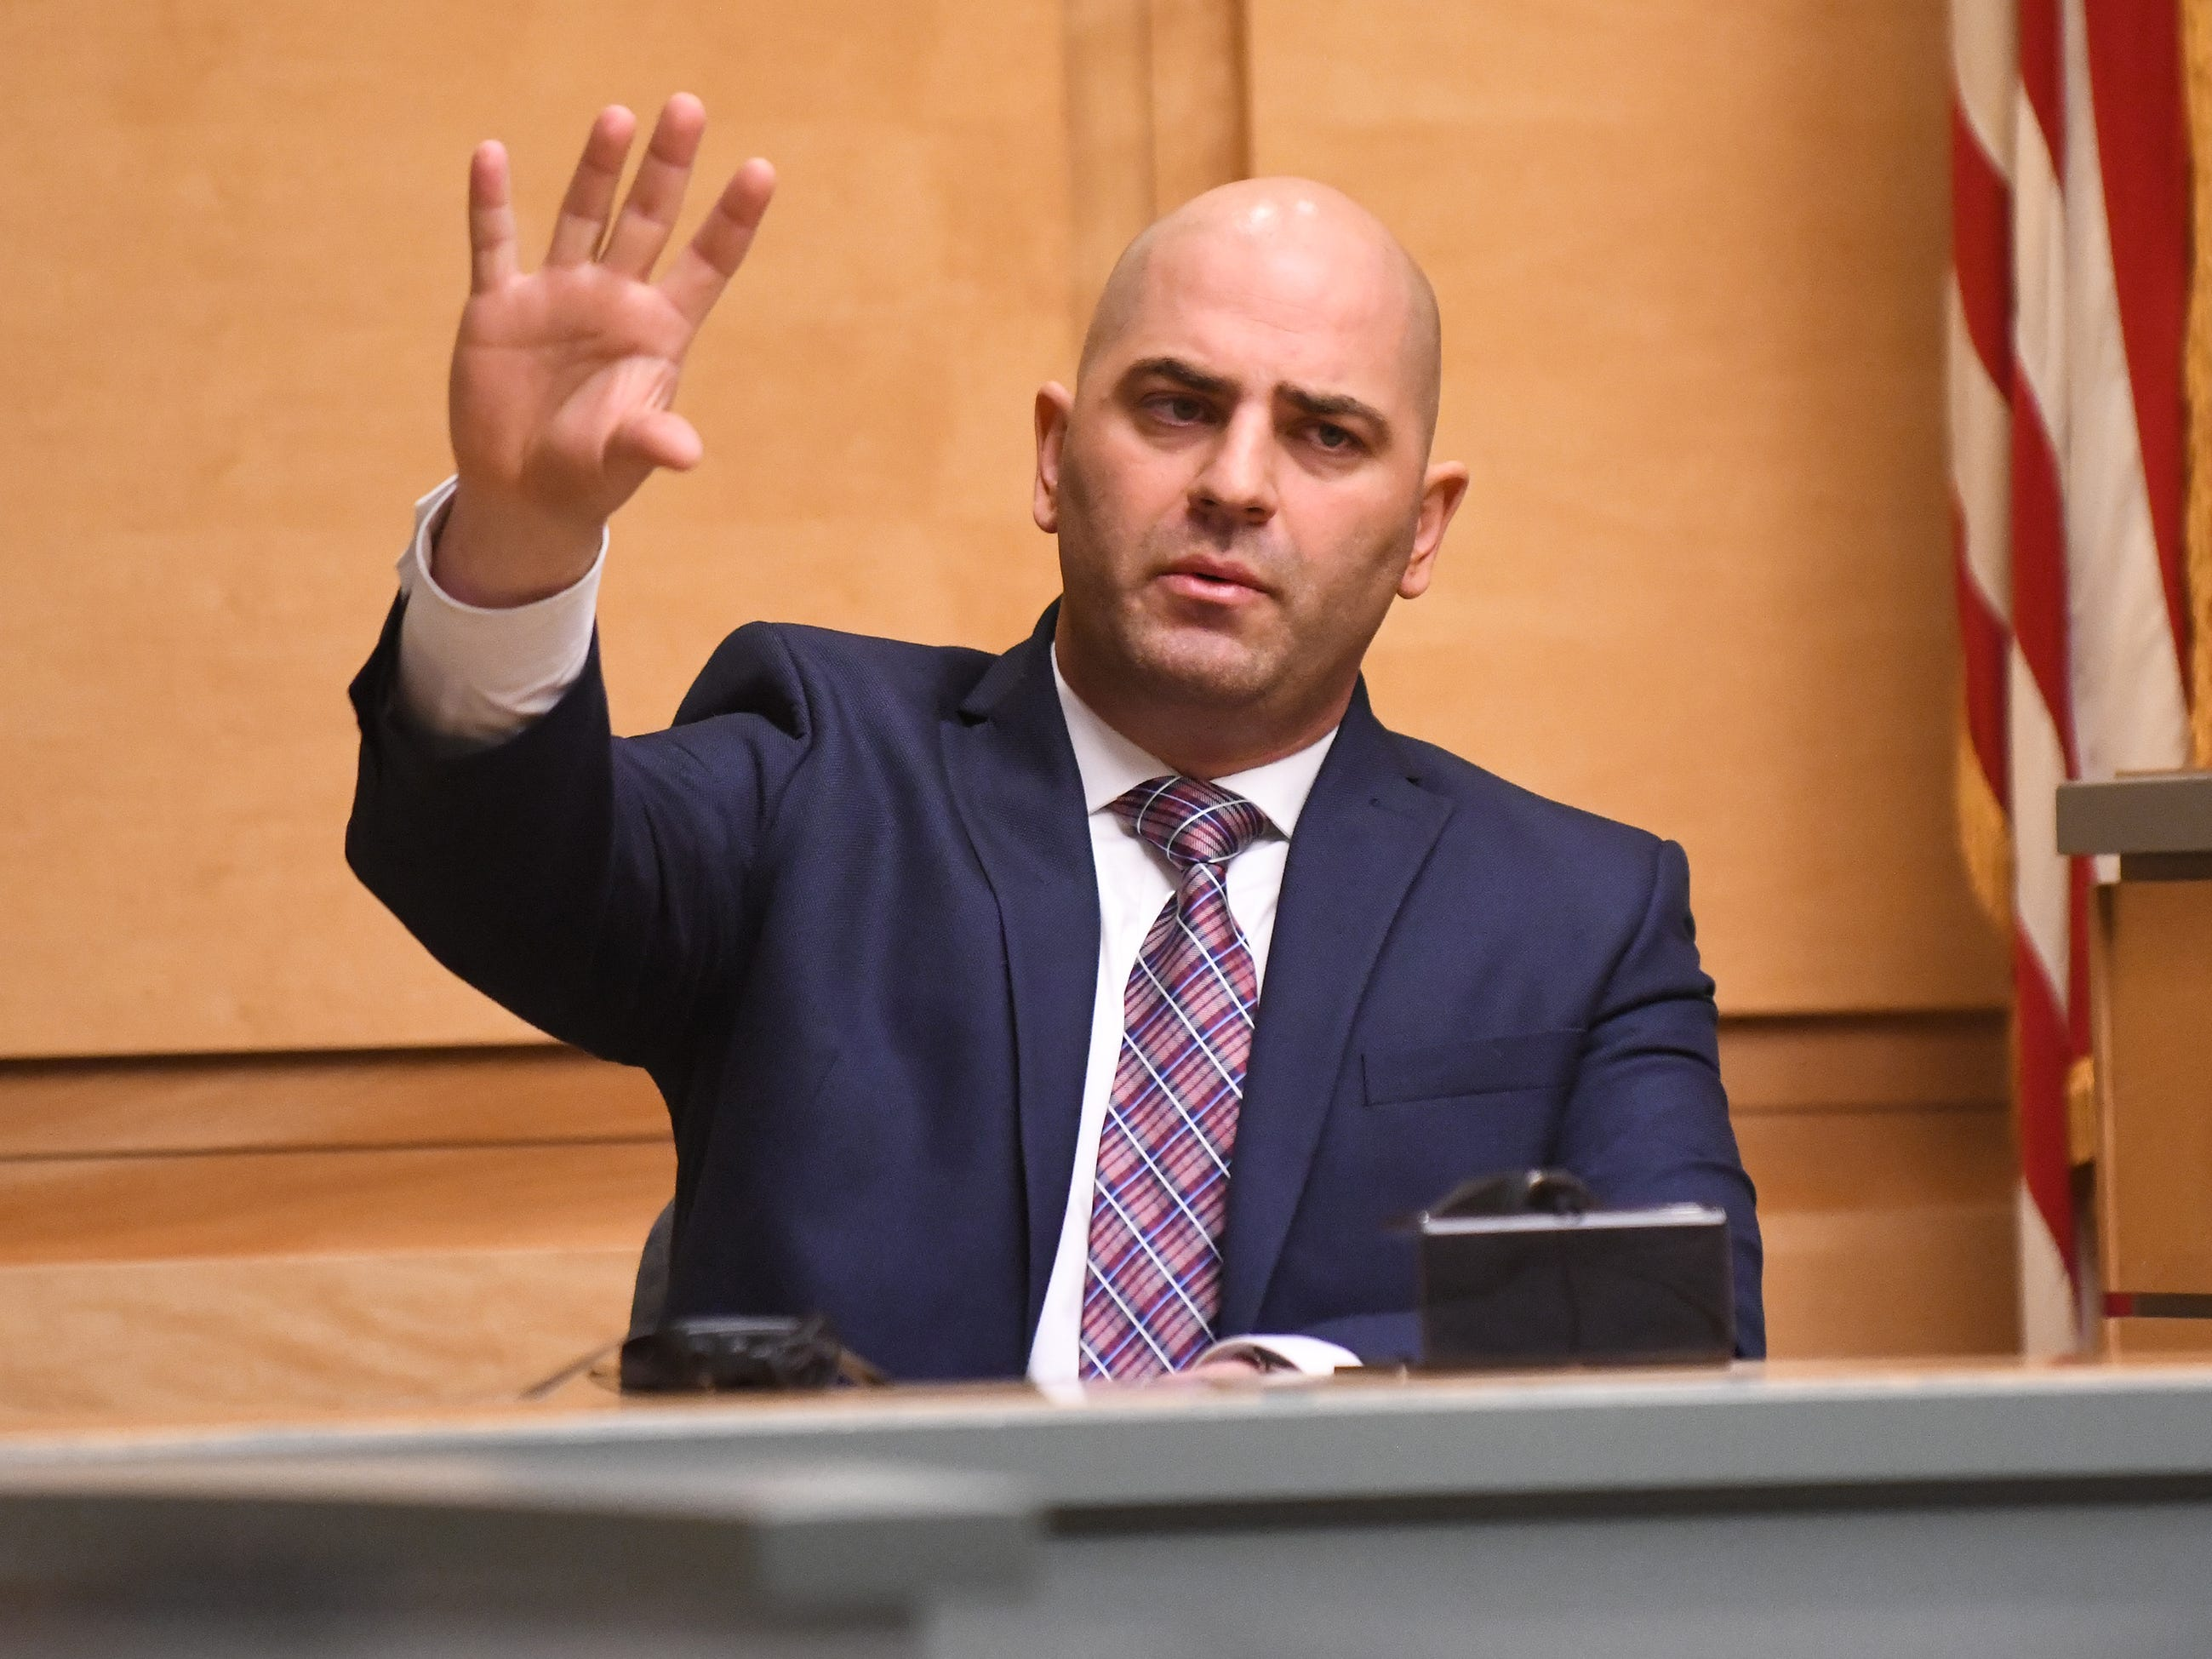 New Jersey State Police Detective Michael Hughes describes the crime scene during the murder trial of Jeremiah E. Monell in Cumberland County Superior Court on Thursday, January 3, 2019.